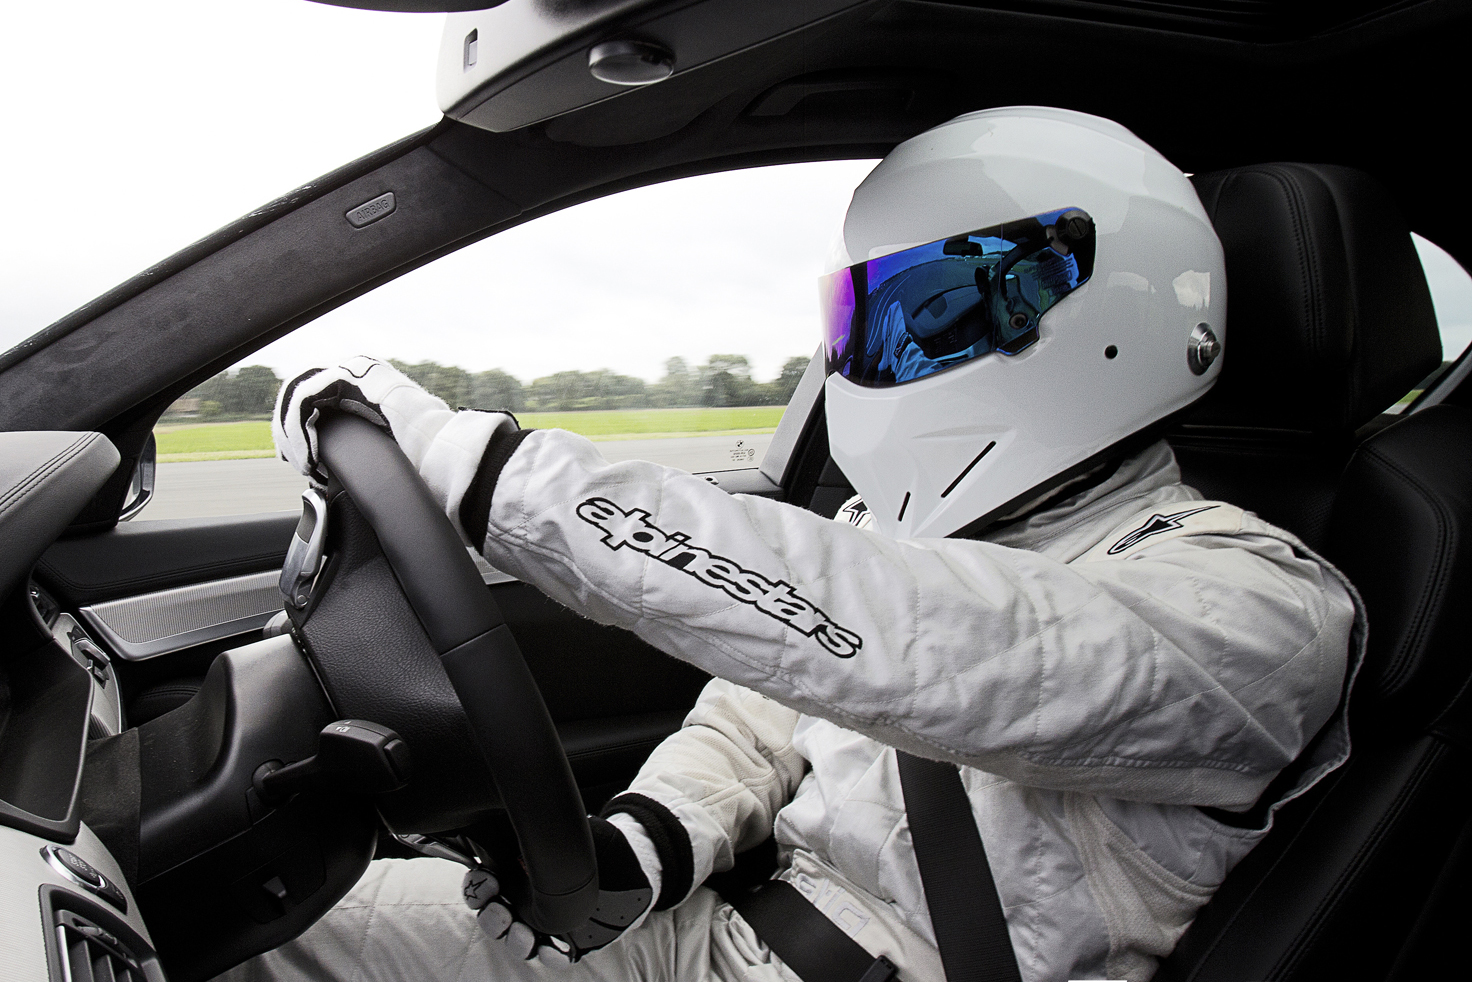 Take an Interactive 360° Tour With The Stig Around the 'Top Gear' Test Track